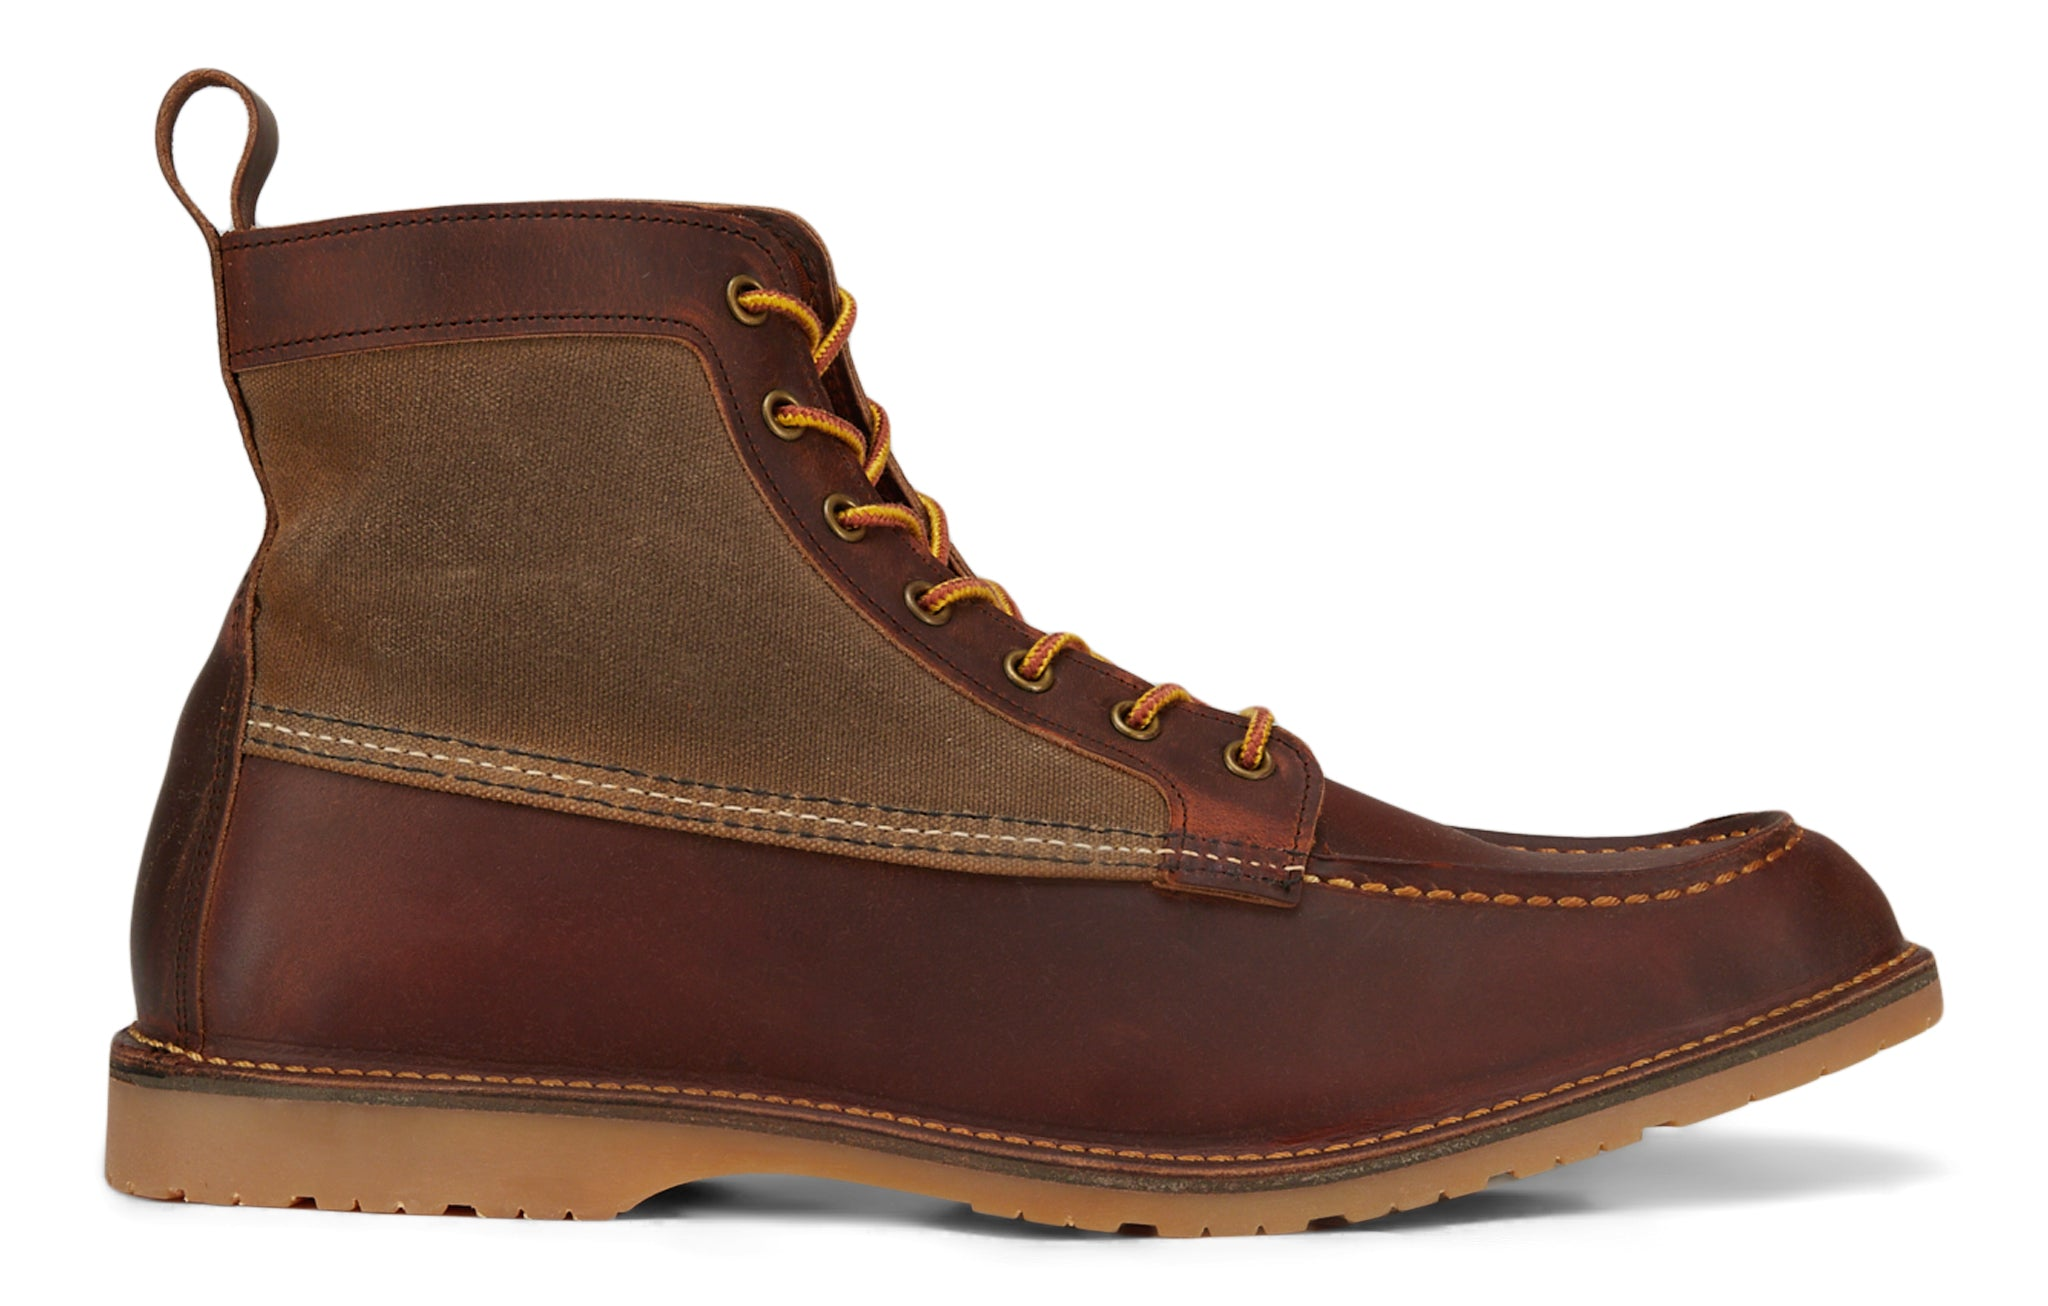 Red Wing Shoes Wacouta 6-inch Boots